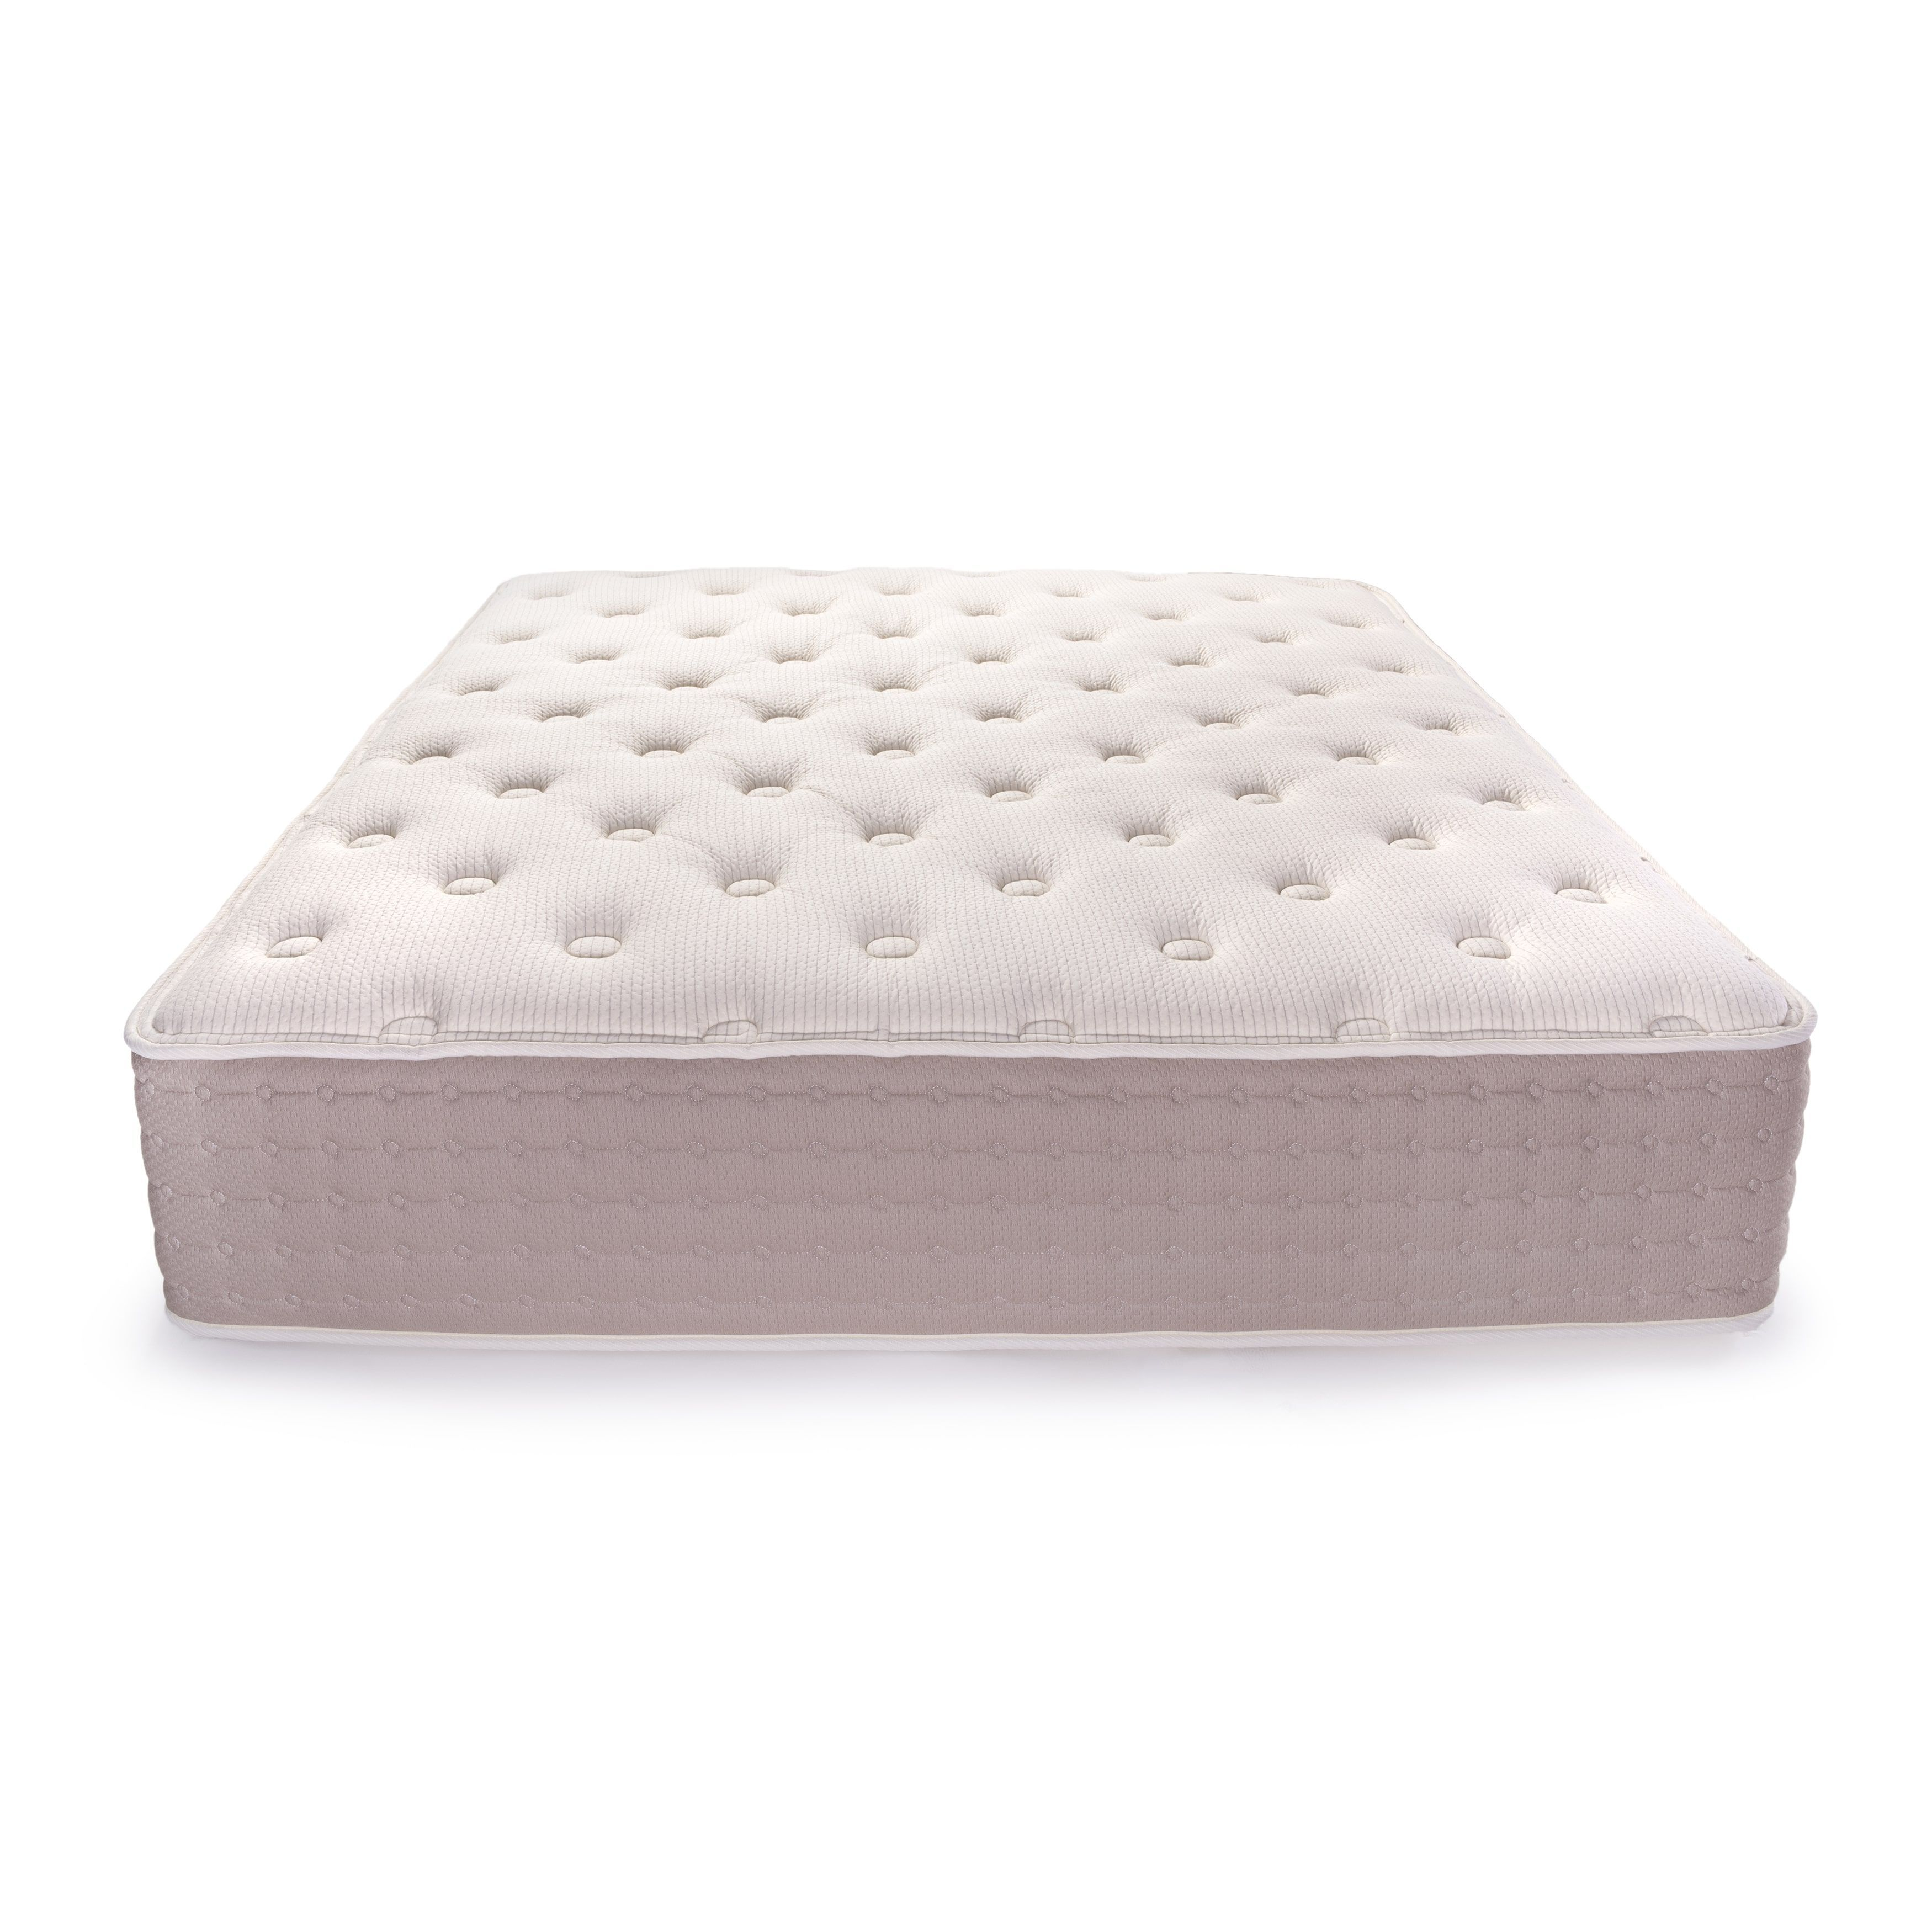 Latex Kissen Ecologi 11 Inch King Size Latex Hybrid Mattress Products